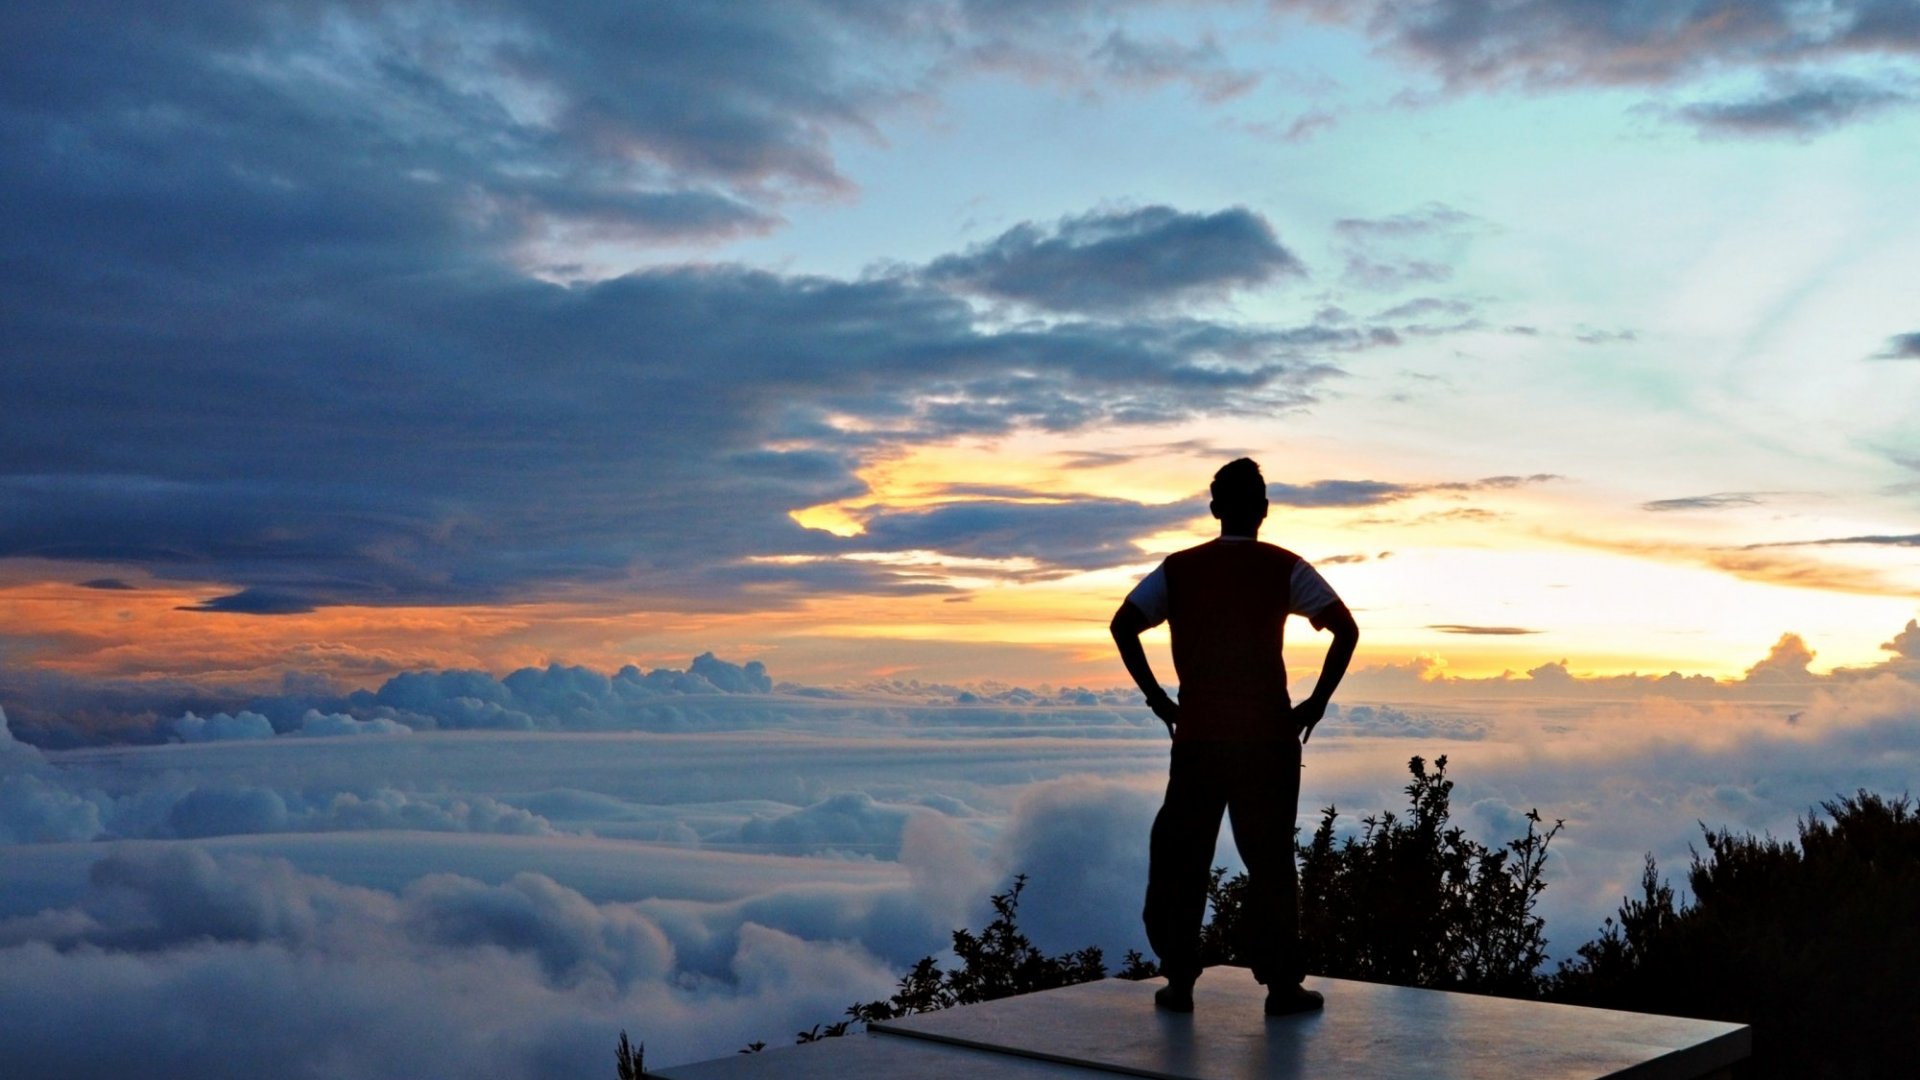 man standing in mountain